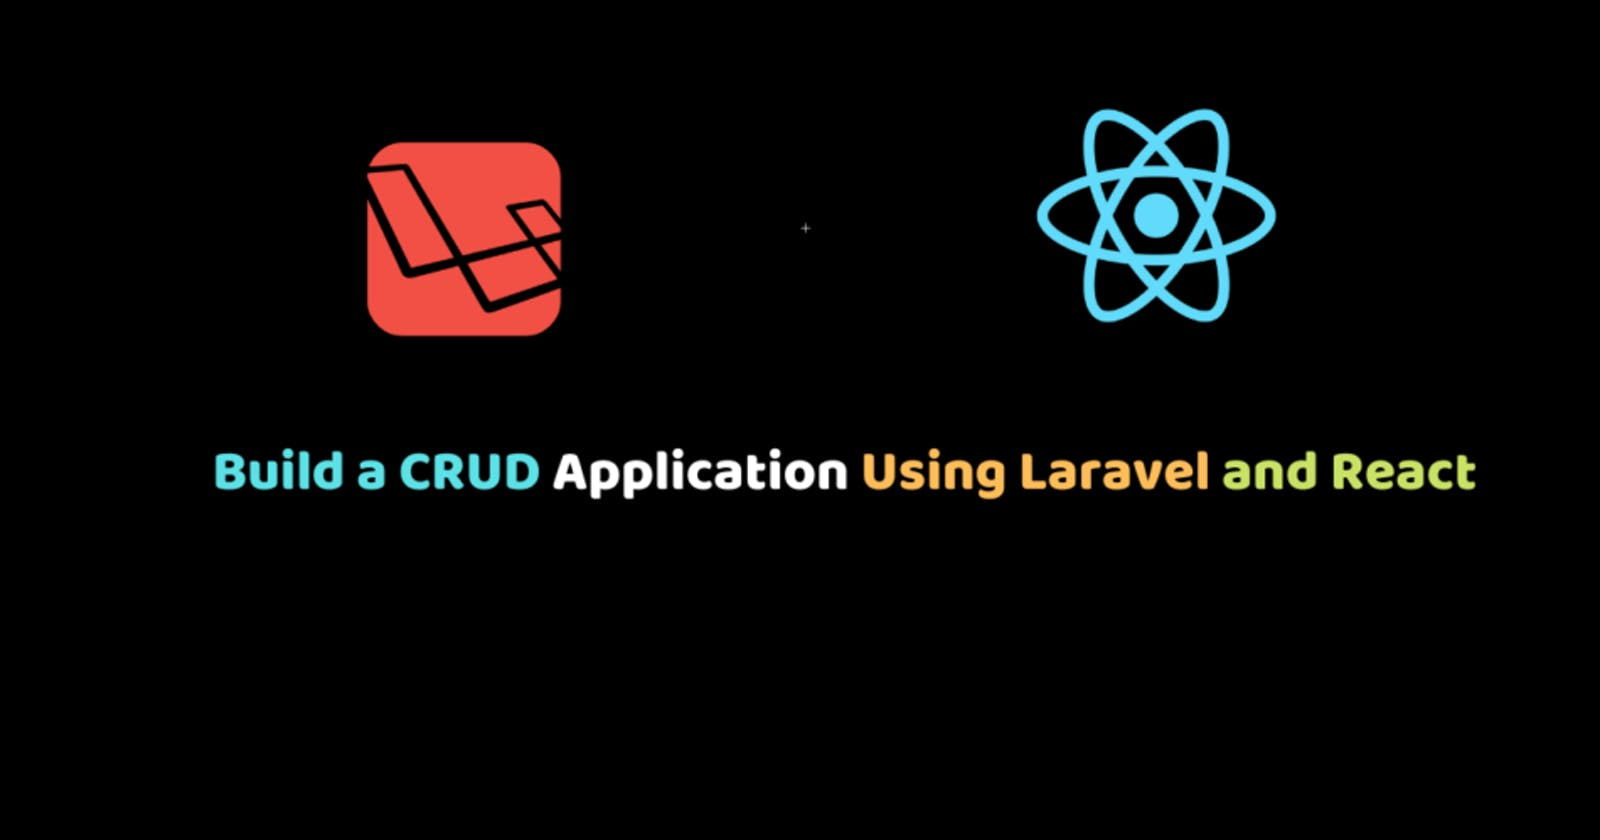 Build a CRUD Application Using Laravel and React